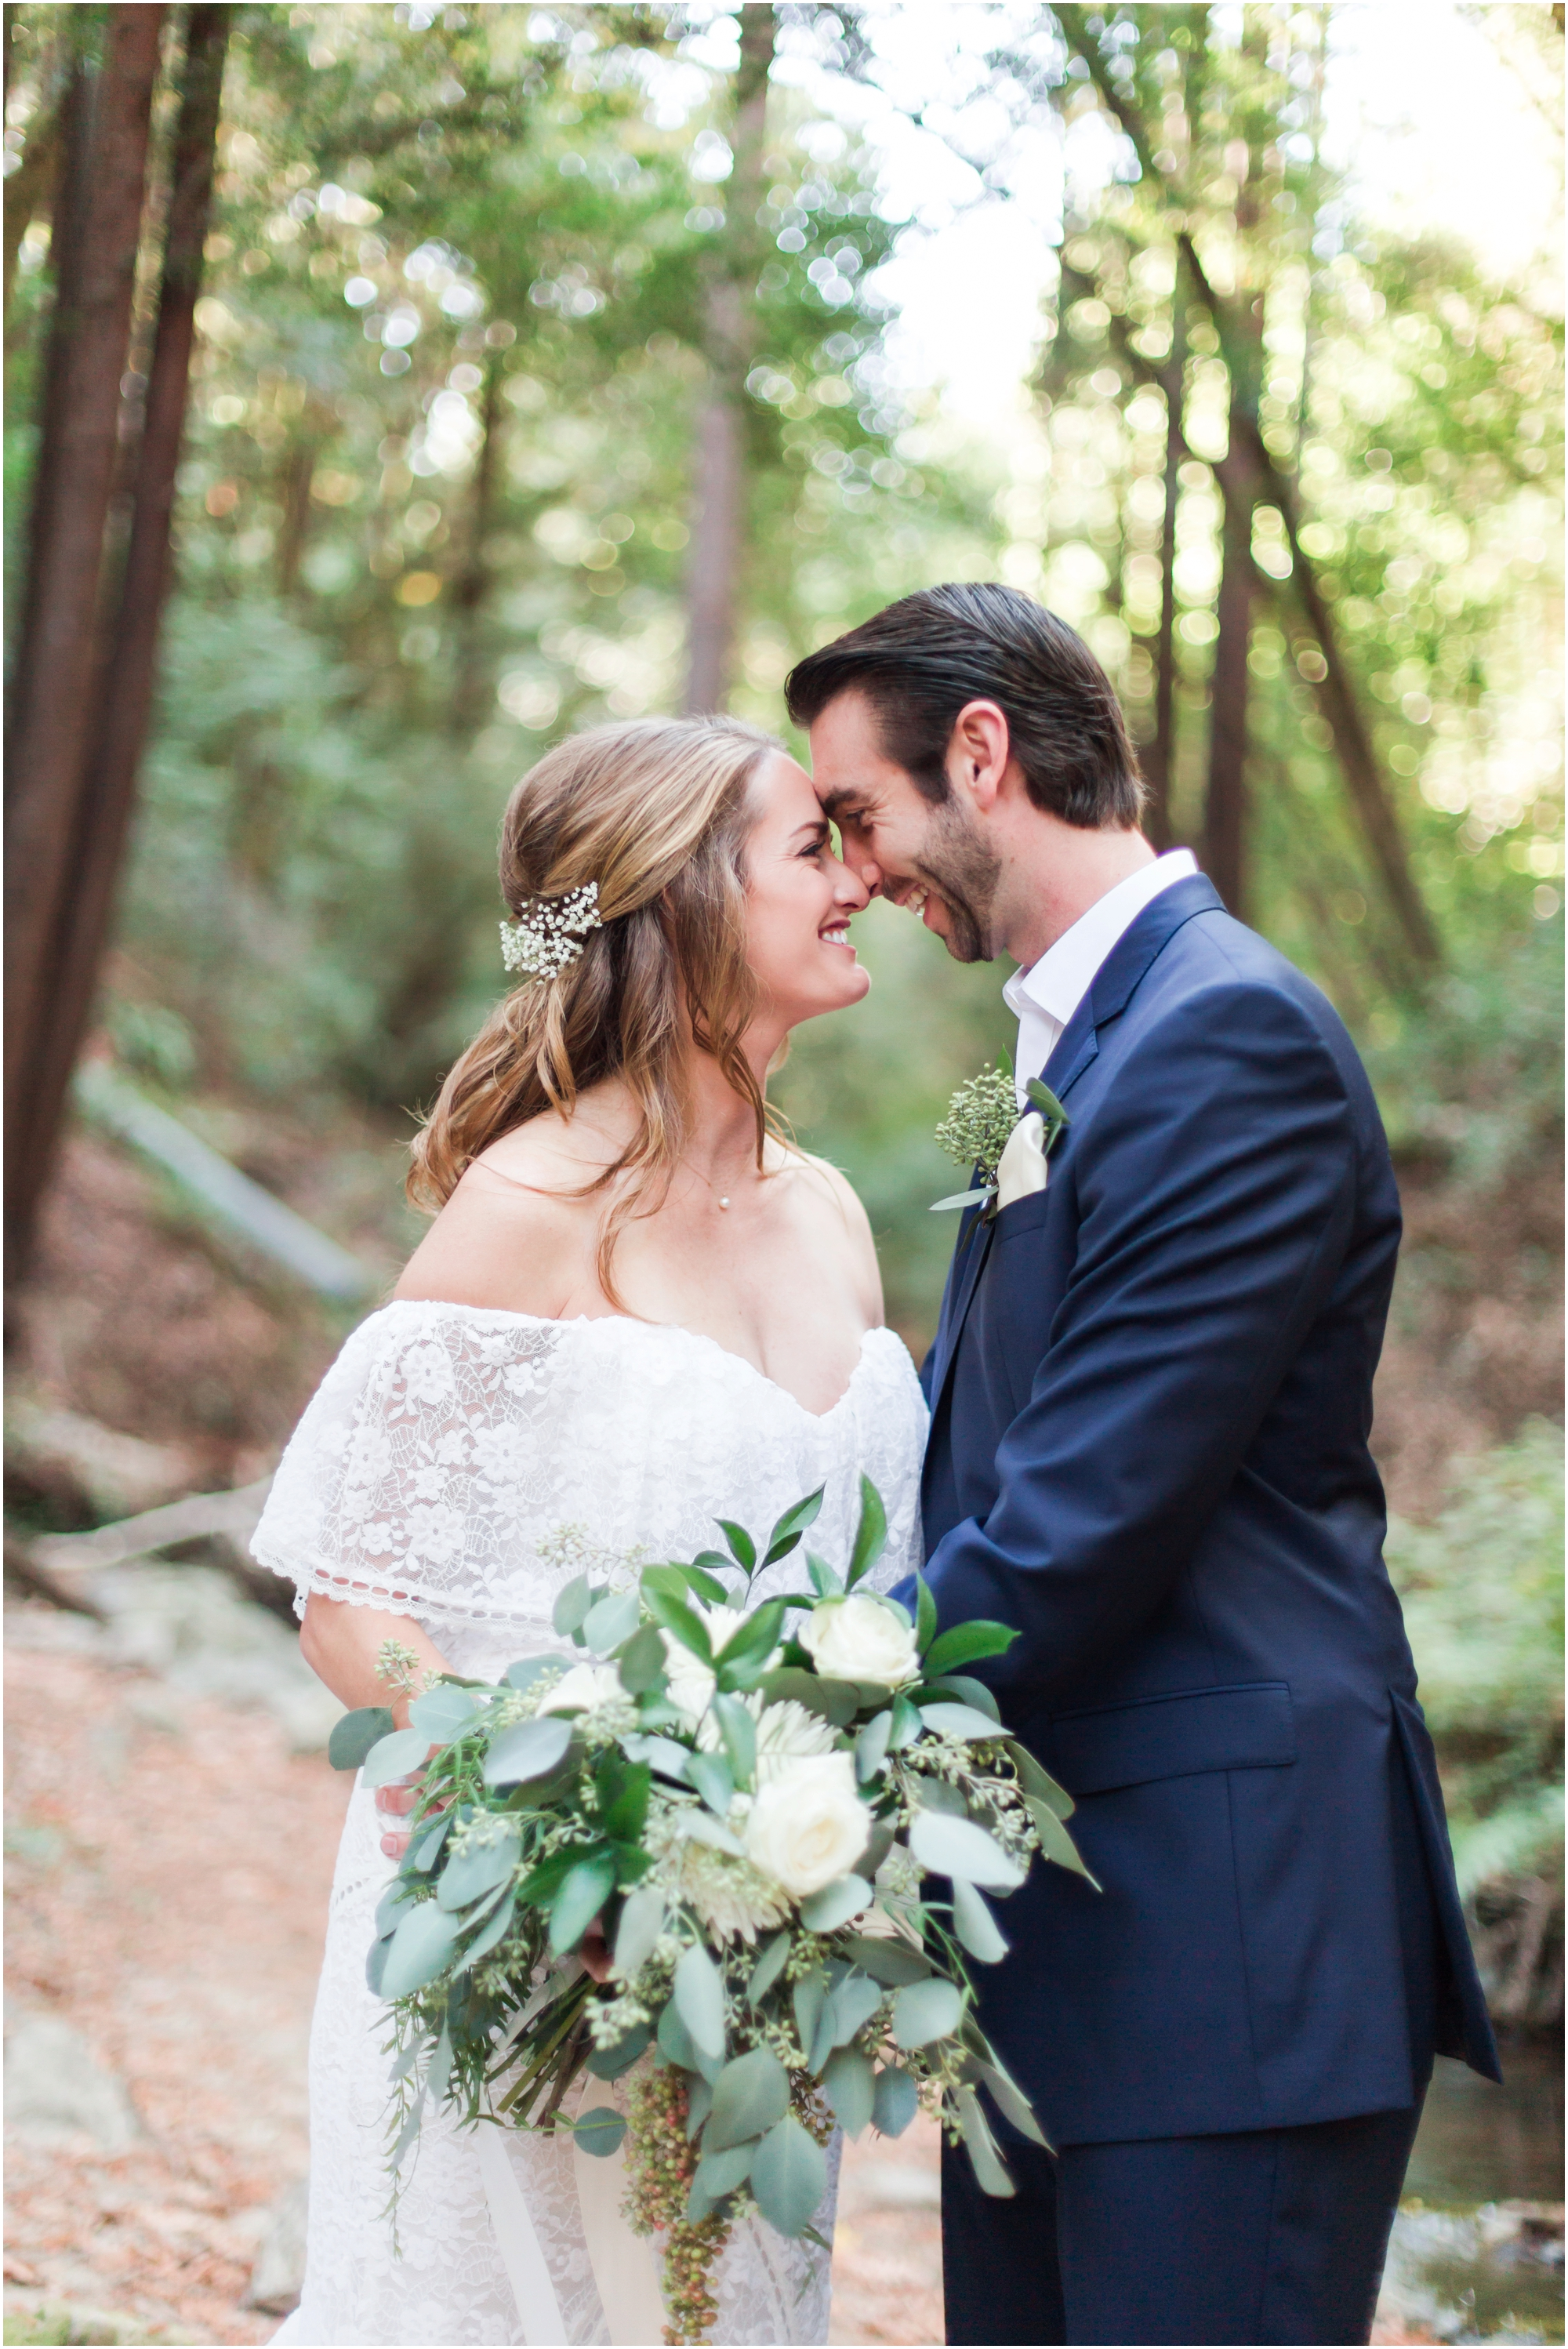 Saratoga+Springs+wedding+pictures+by+Briana+Calderon+Photography_0335.jpg